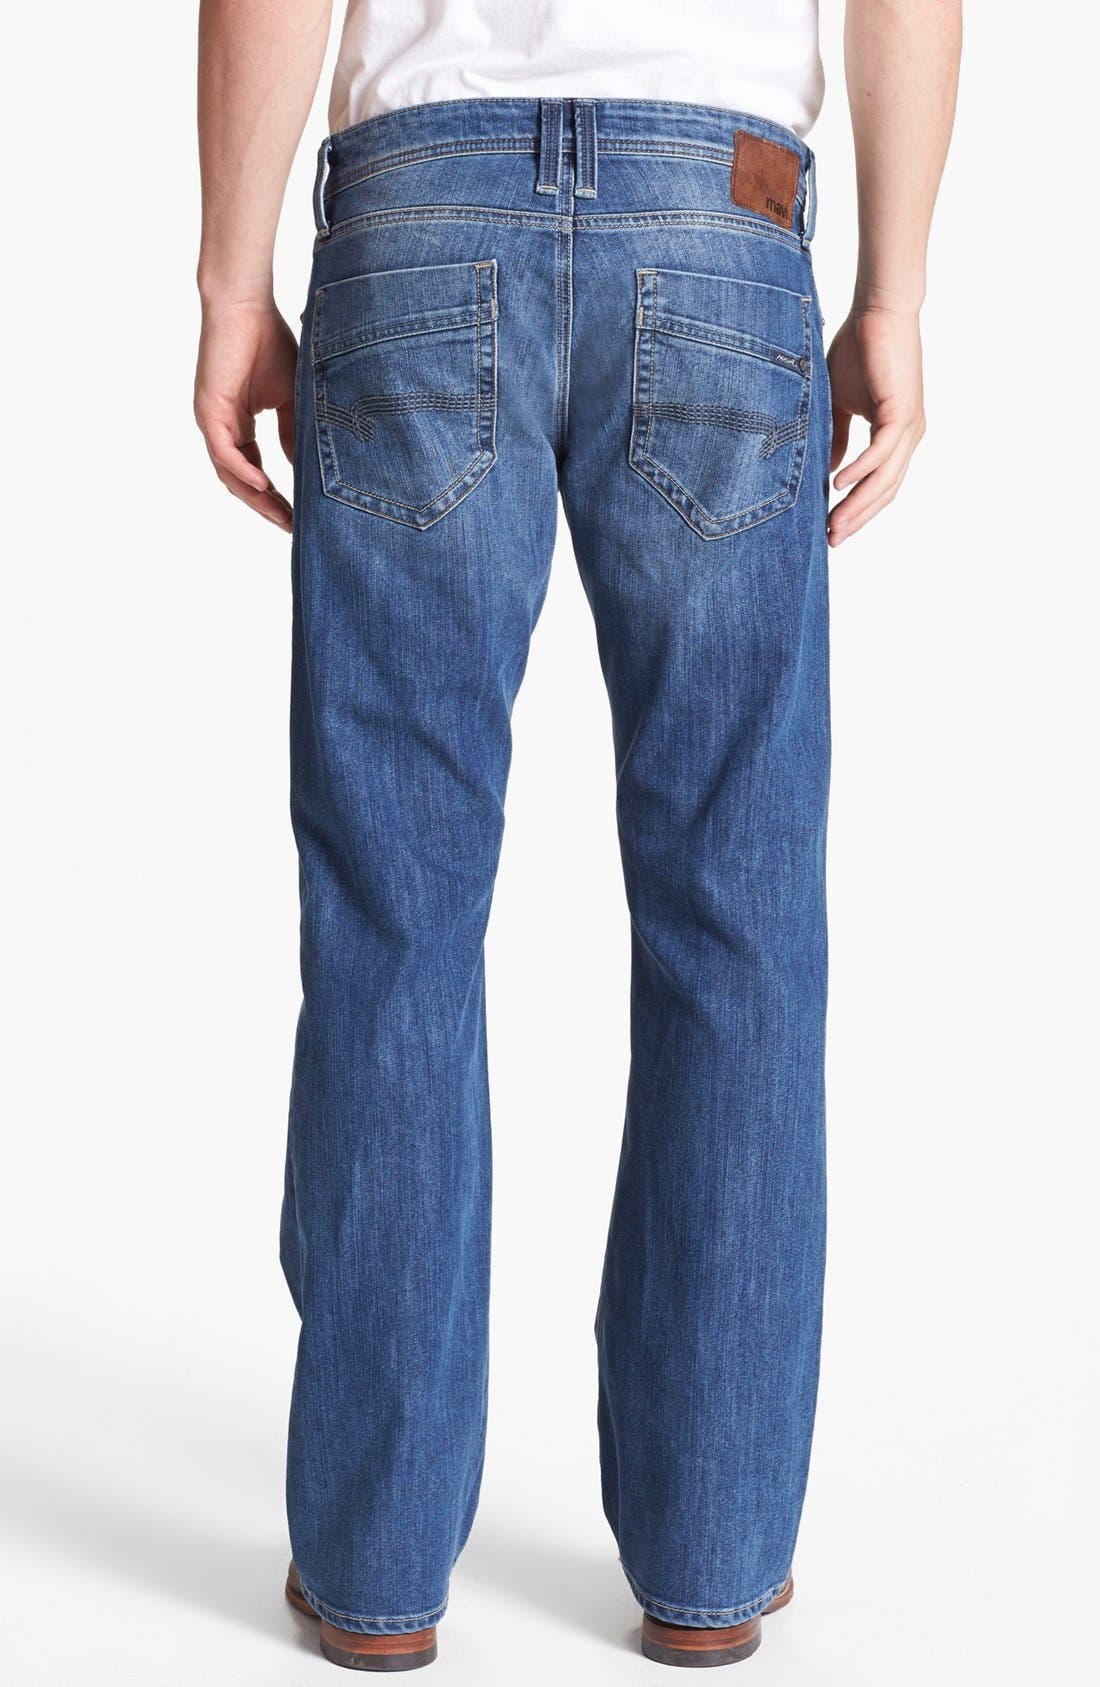 Alternate Image 1 Selected - Mavi Jeans 'Josh' Bootcut Jeans (Mid Cooper)